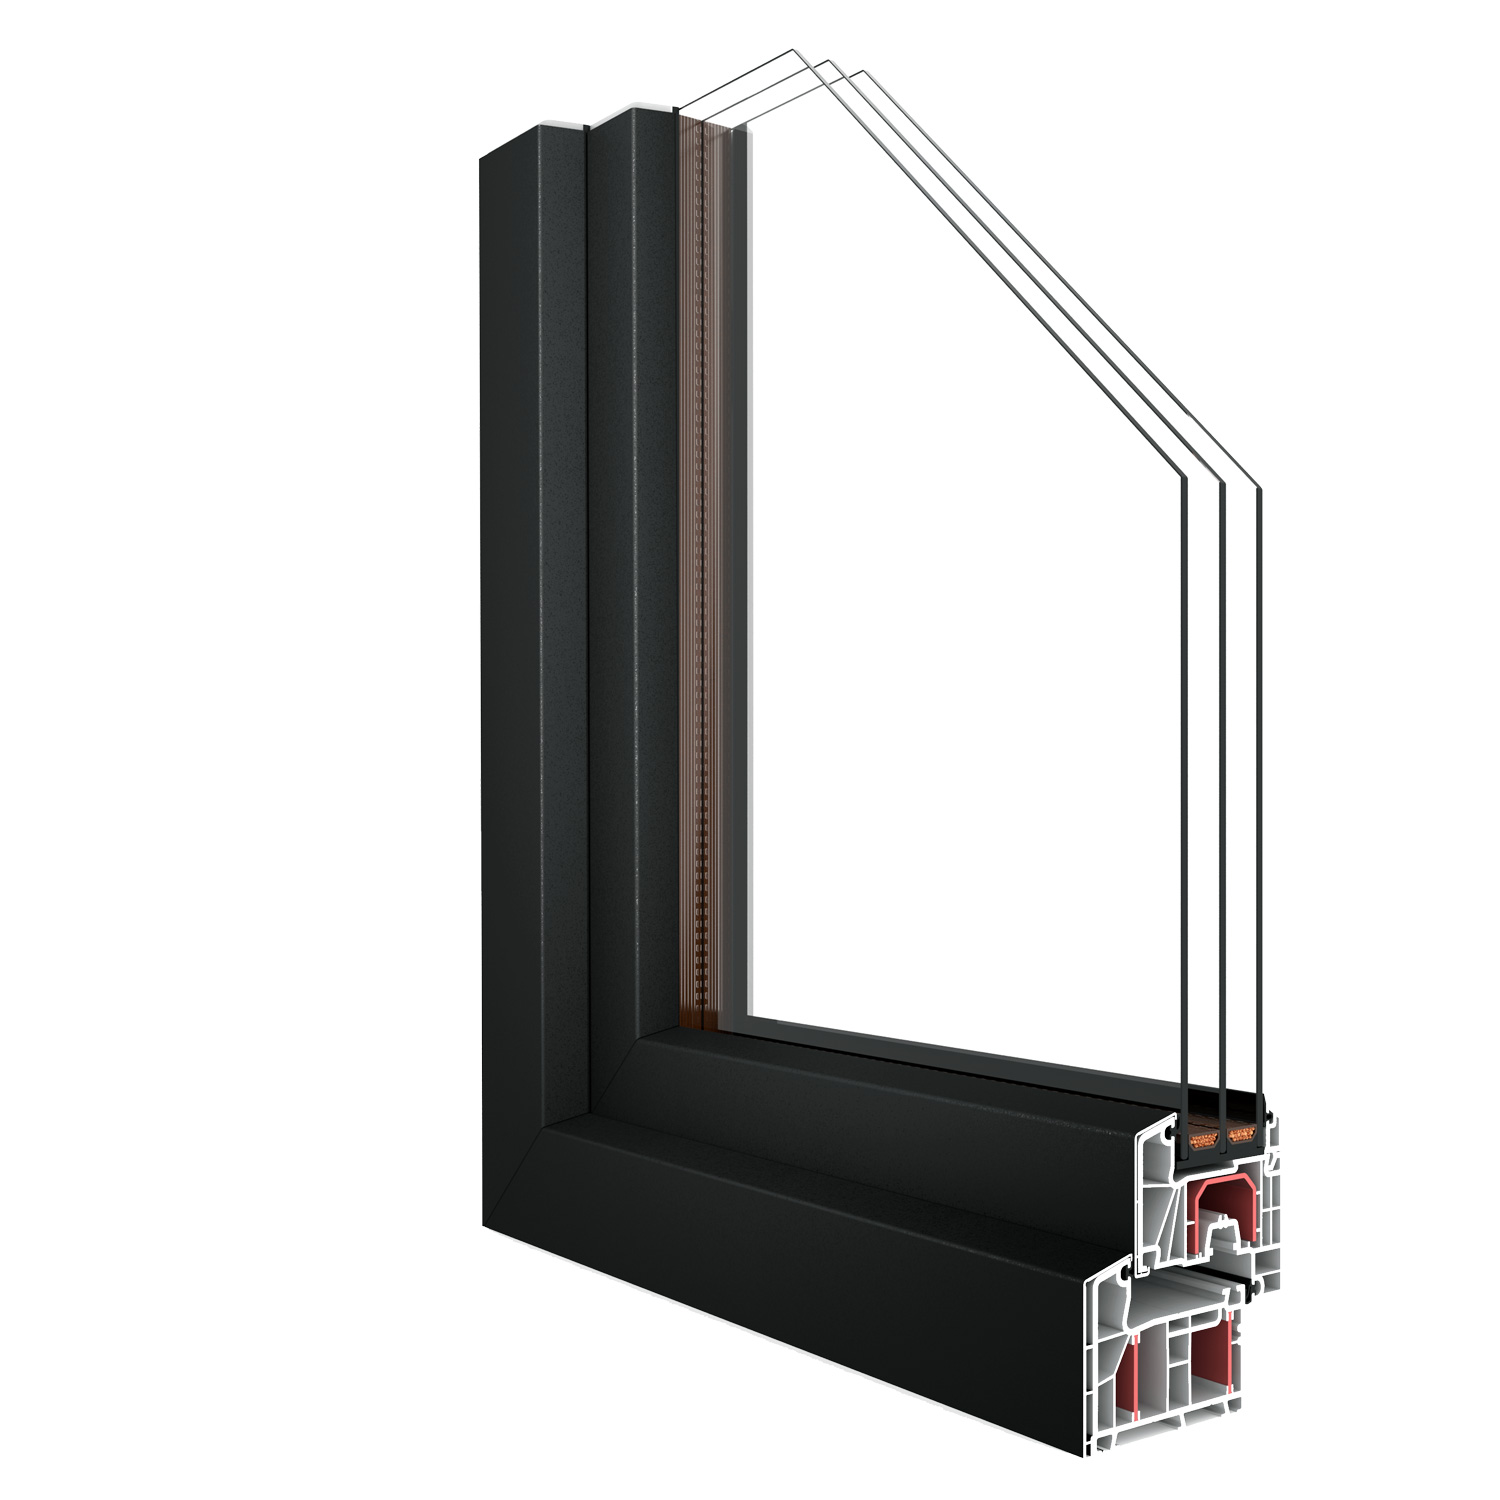 R-7 Zola Thermo Clad uPVC™ window rendering